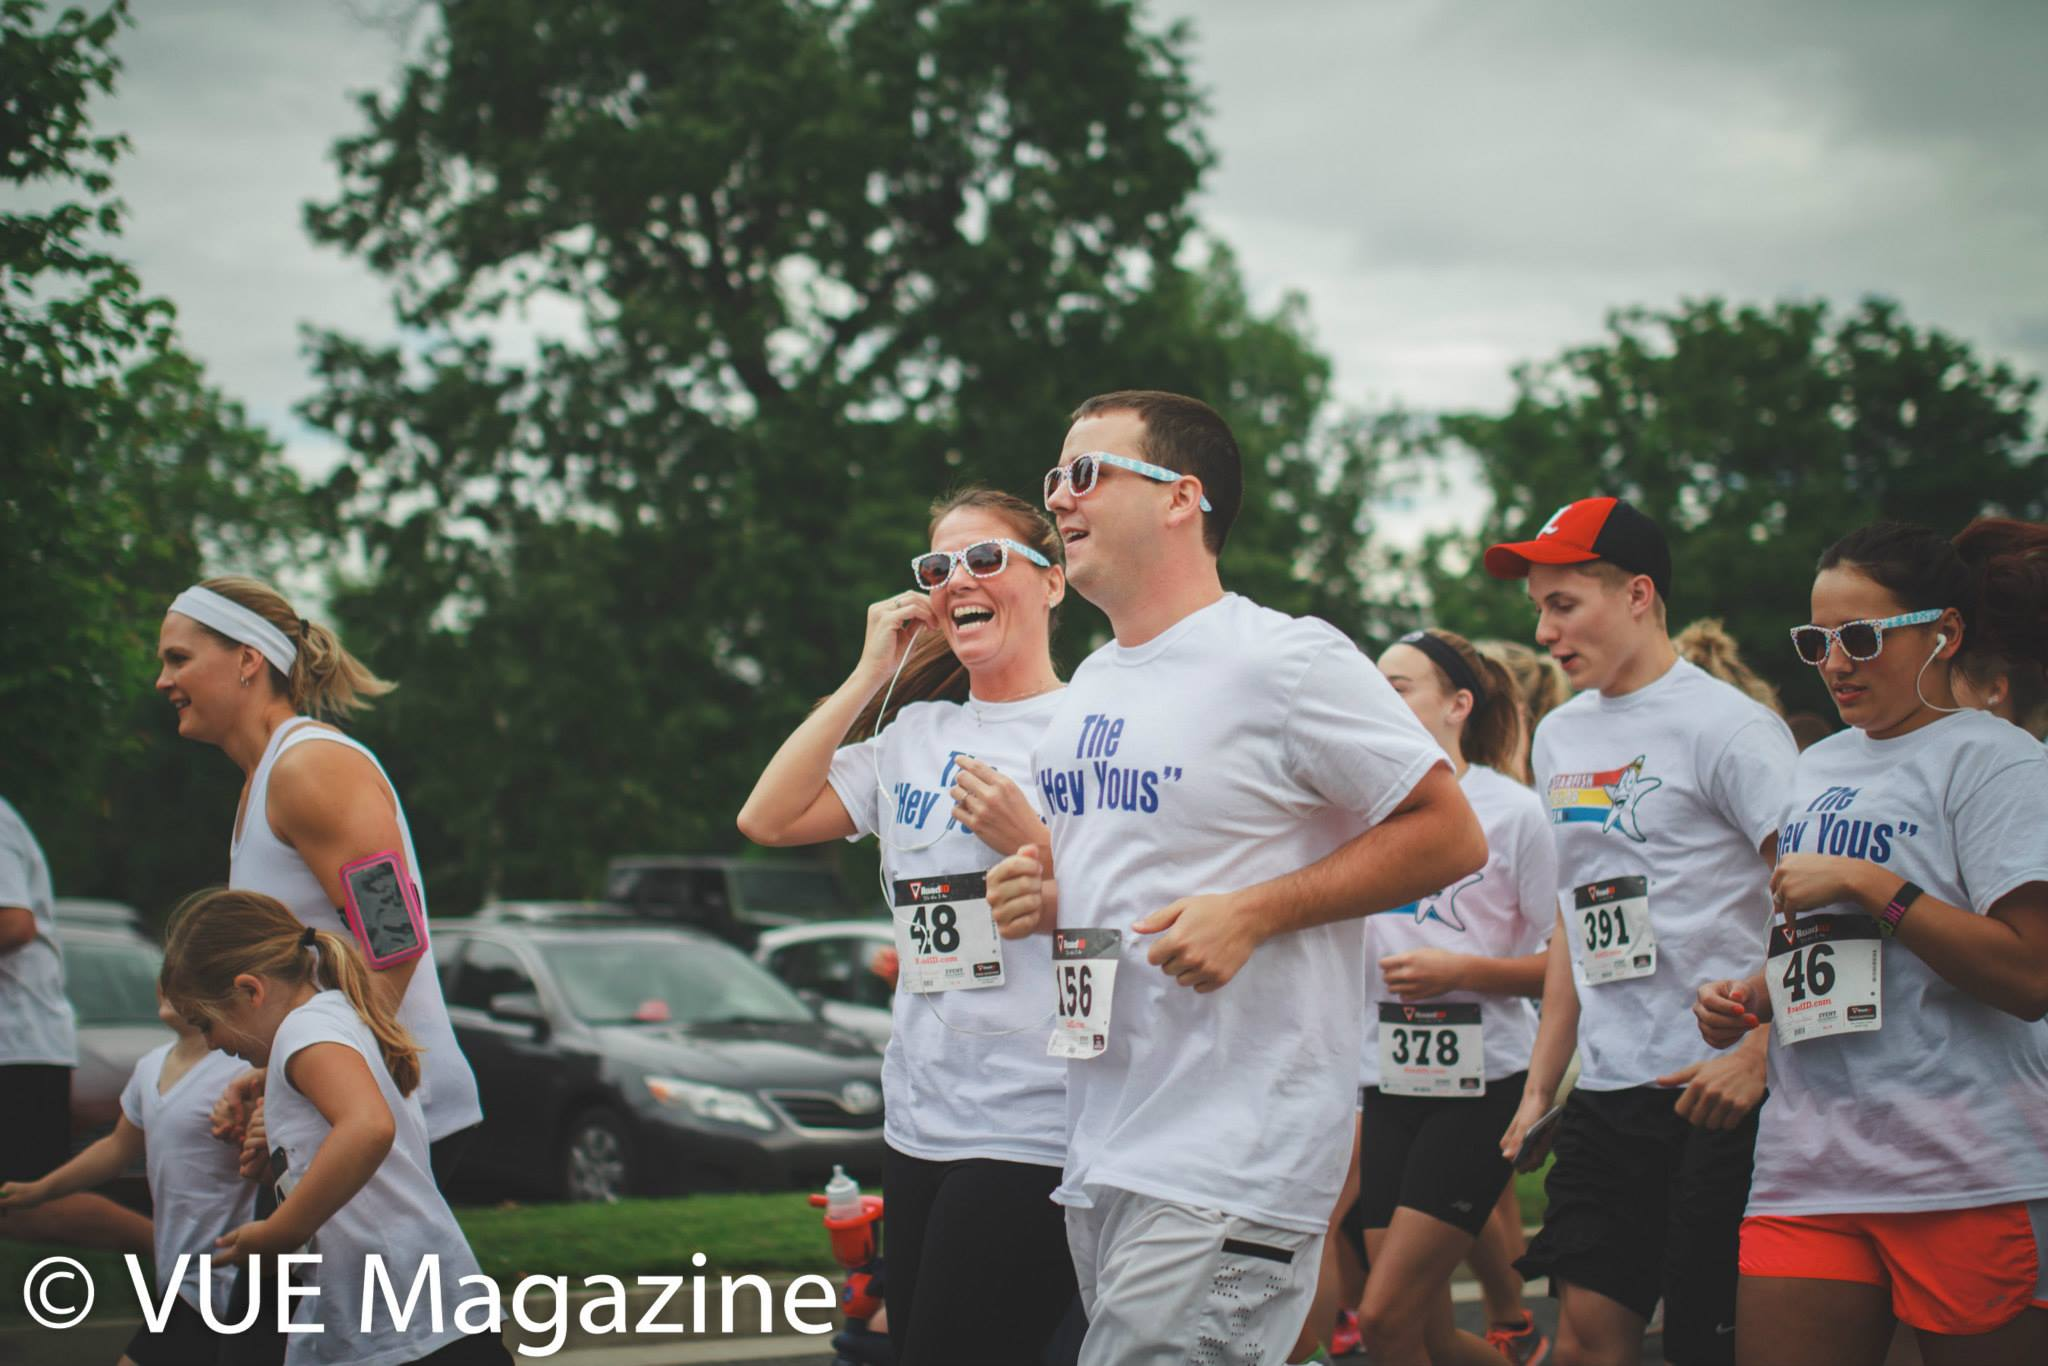 Color Run4